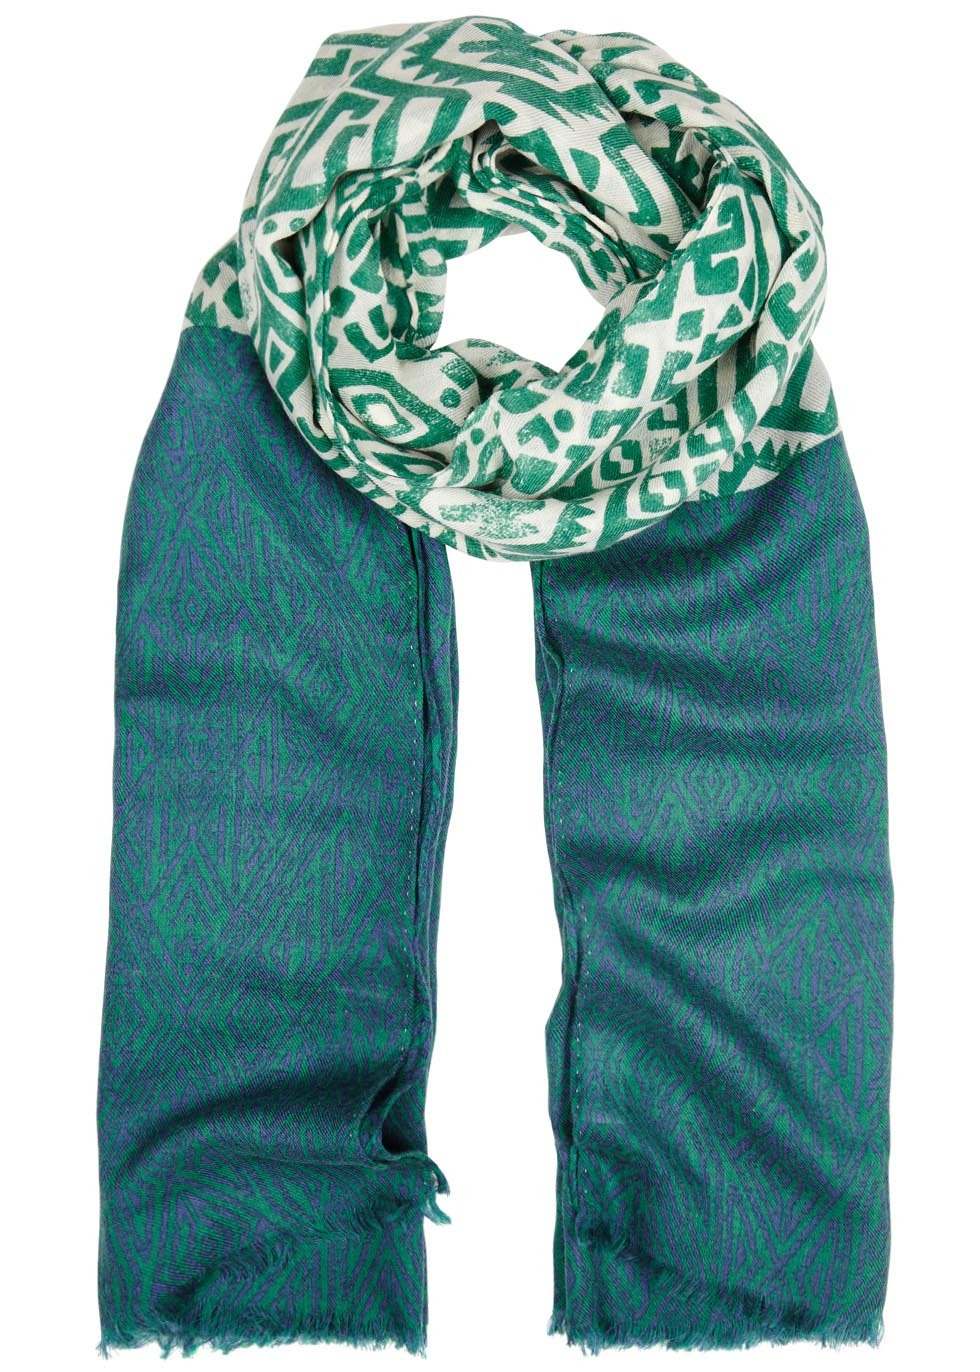 Green Printed Cashmere Blend Scarf - predominant colour: dark green; occasions: casual; type of pattern: standard; style: regular; size: standard; pattern: patterned/print; material: cashmere; season: s/s 2016; wardrobe: highlight